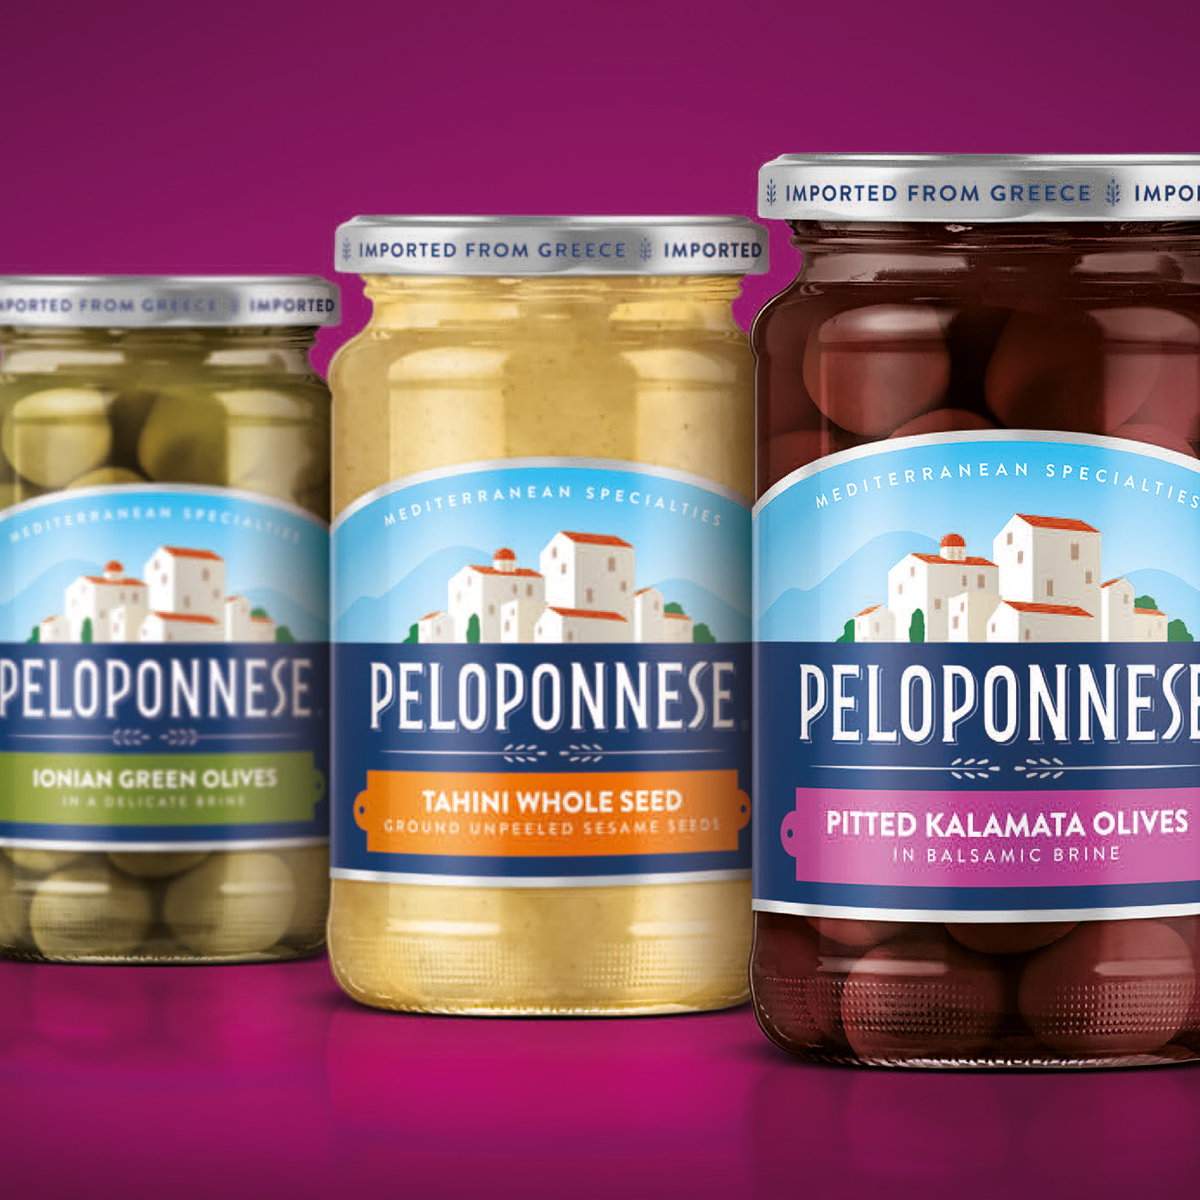 Peloponnese Relaunches with Revitalized Visual Identity to Appeal to a New Generation of Taste Adventurers